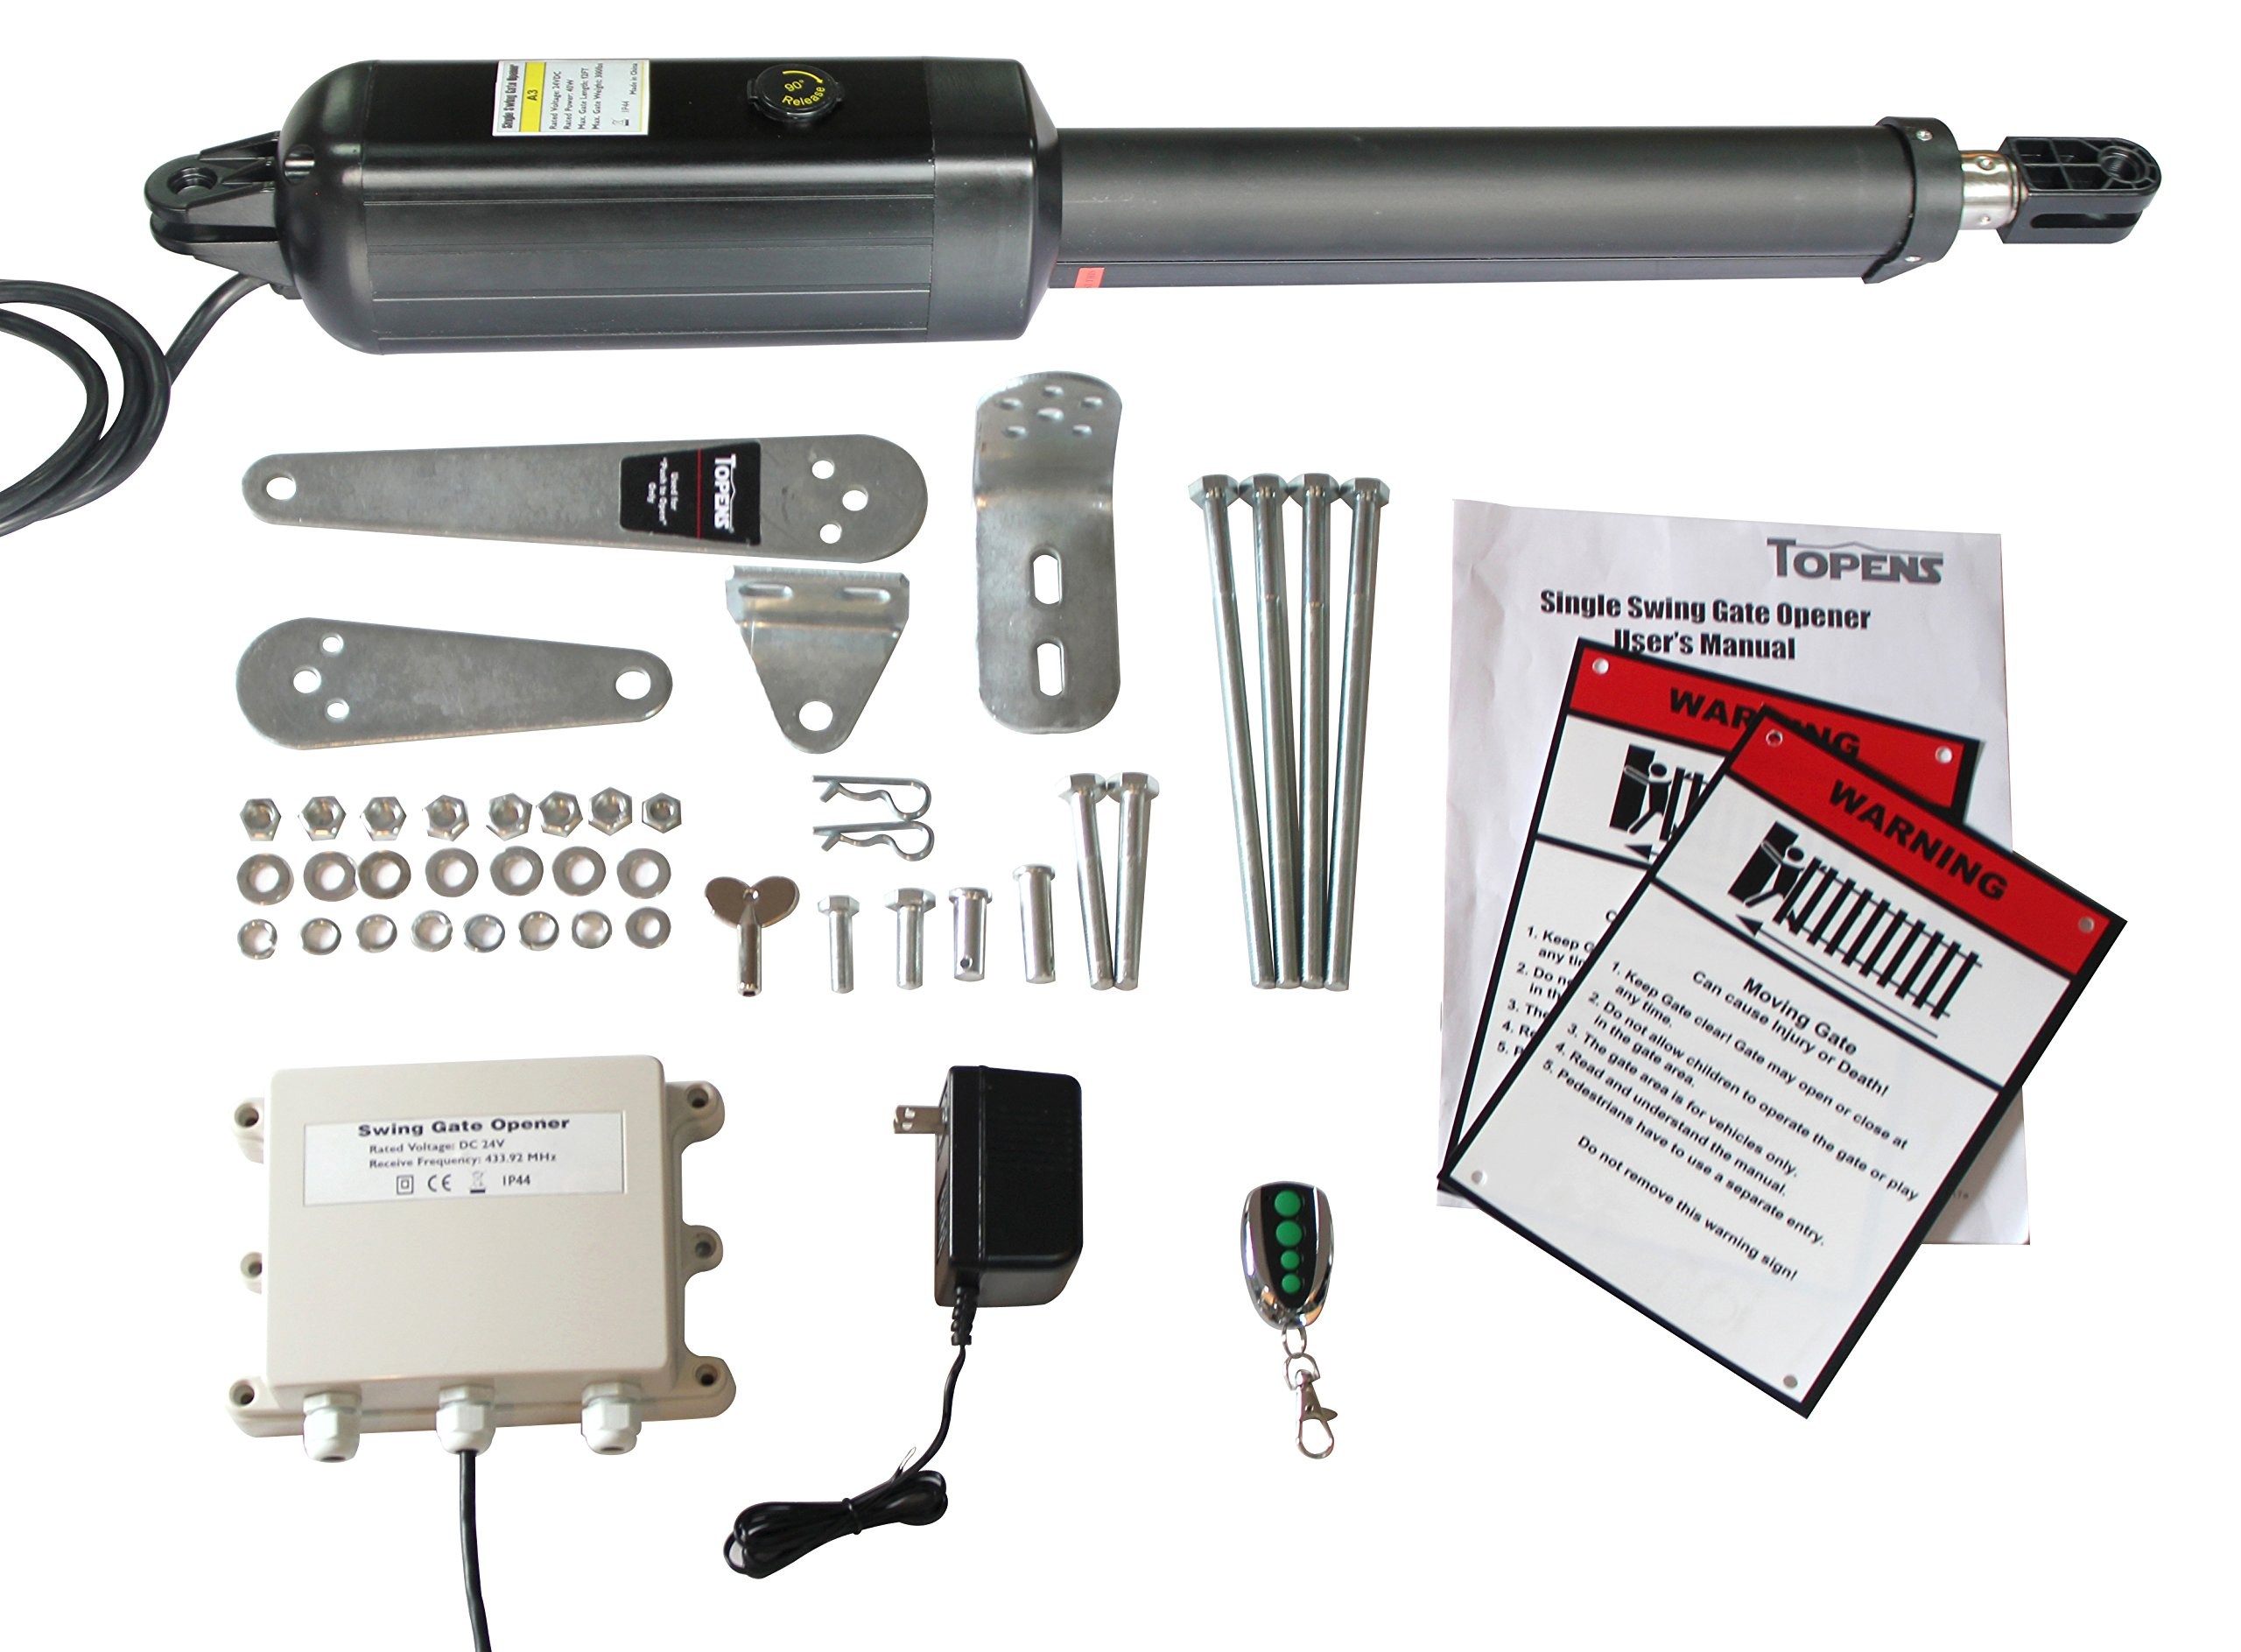 TOPENS A3 Automatic Swing Gate Opener with Free ''Push to Open'' Bracket for Single Swing Gate Up to 300lbs or 12 Feet Gate Operator